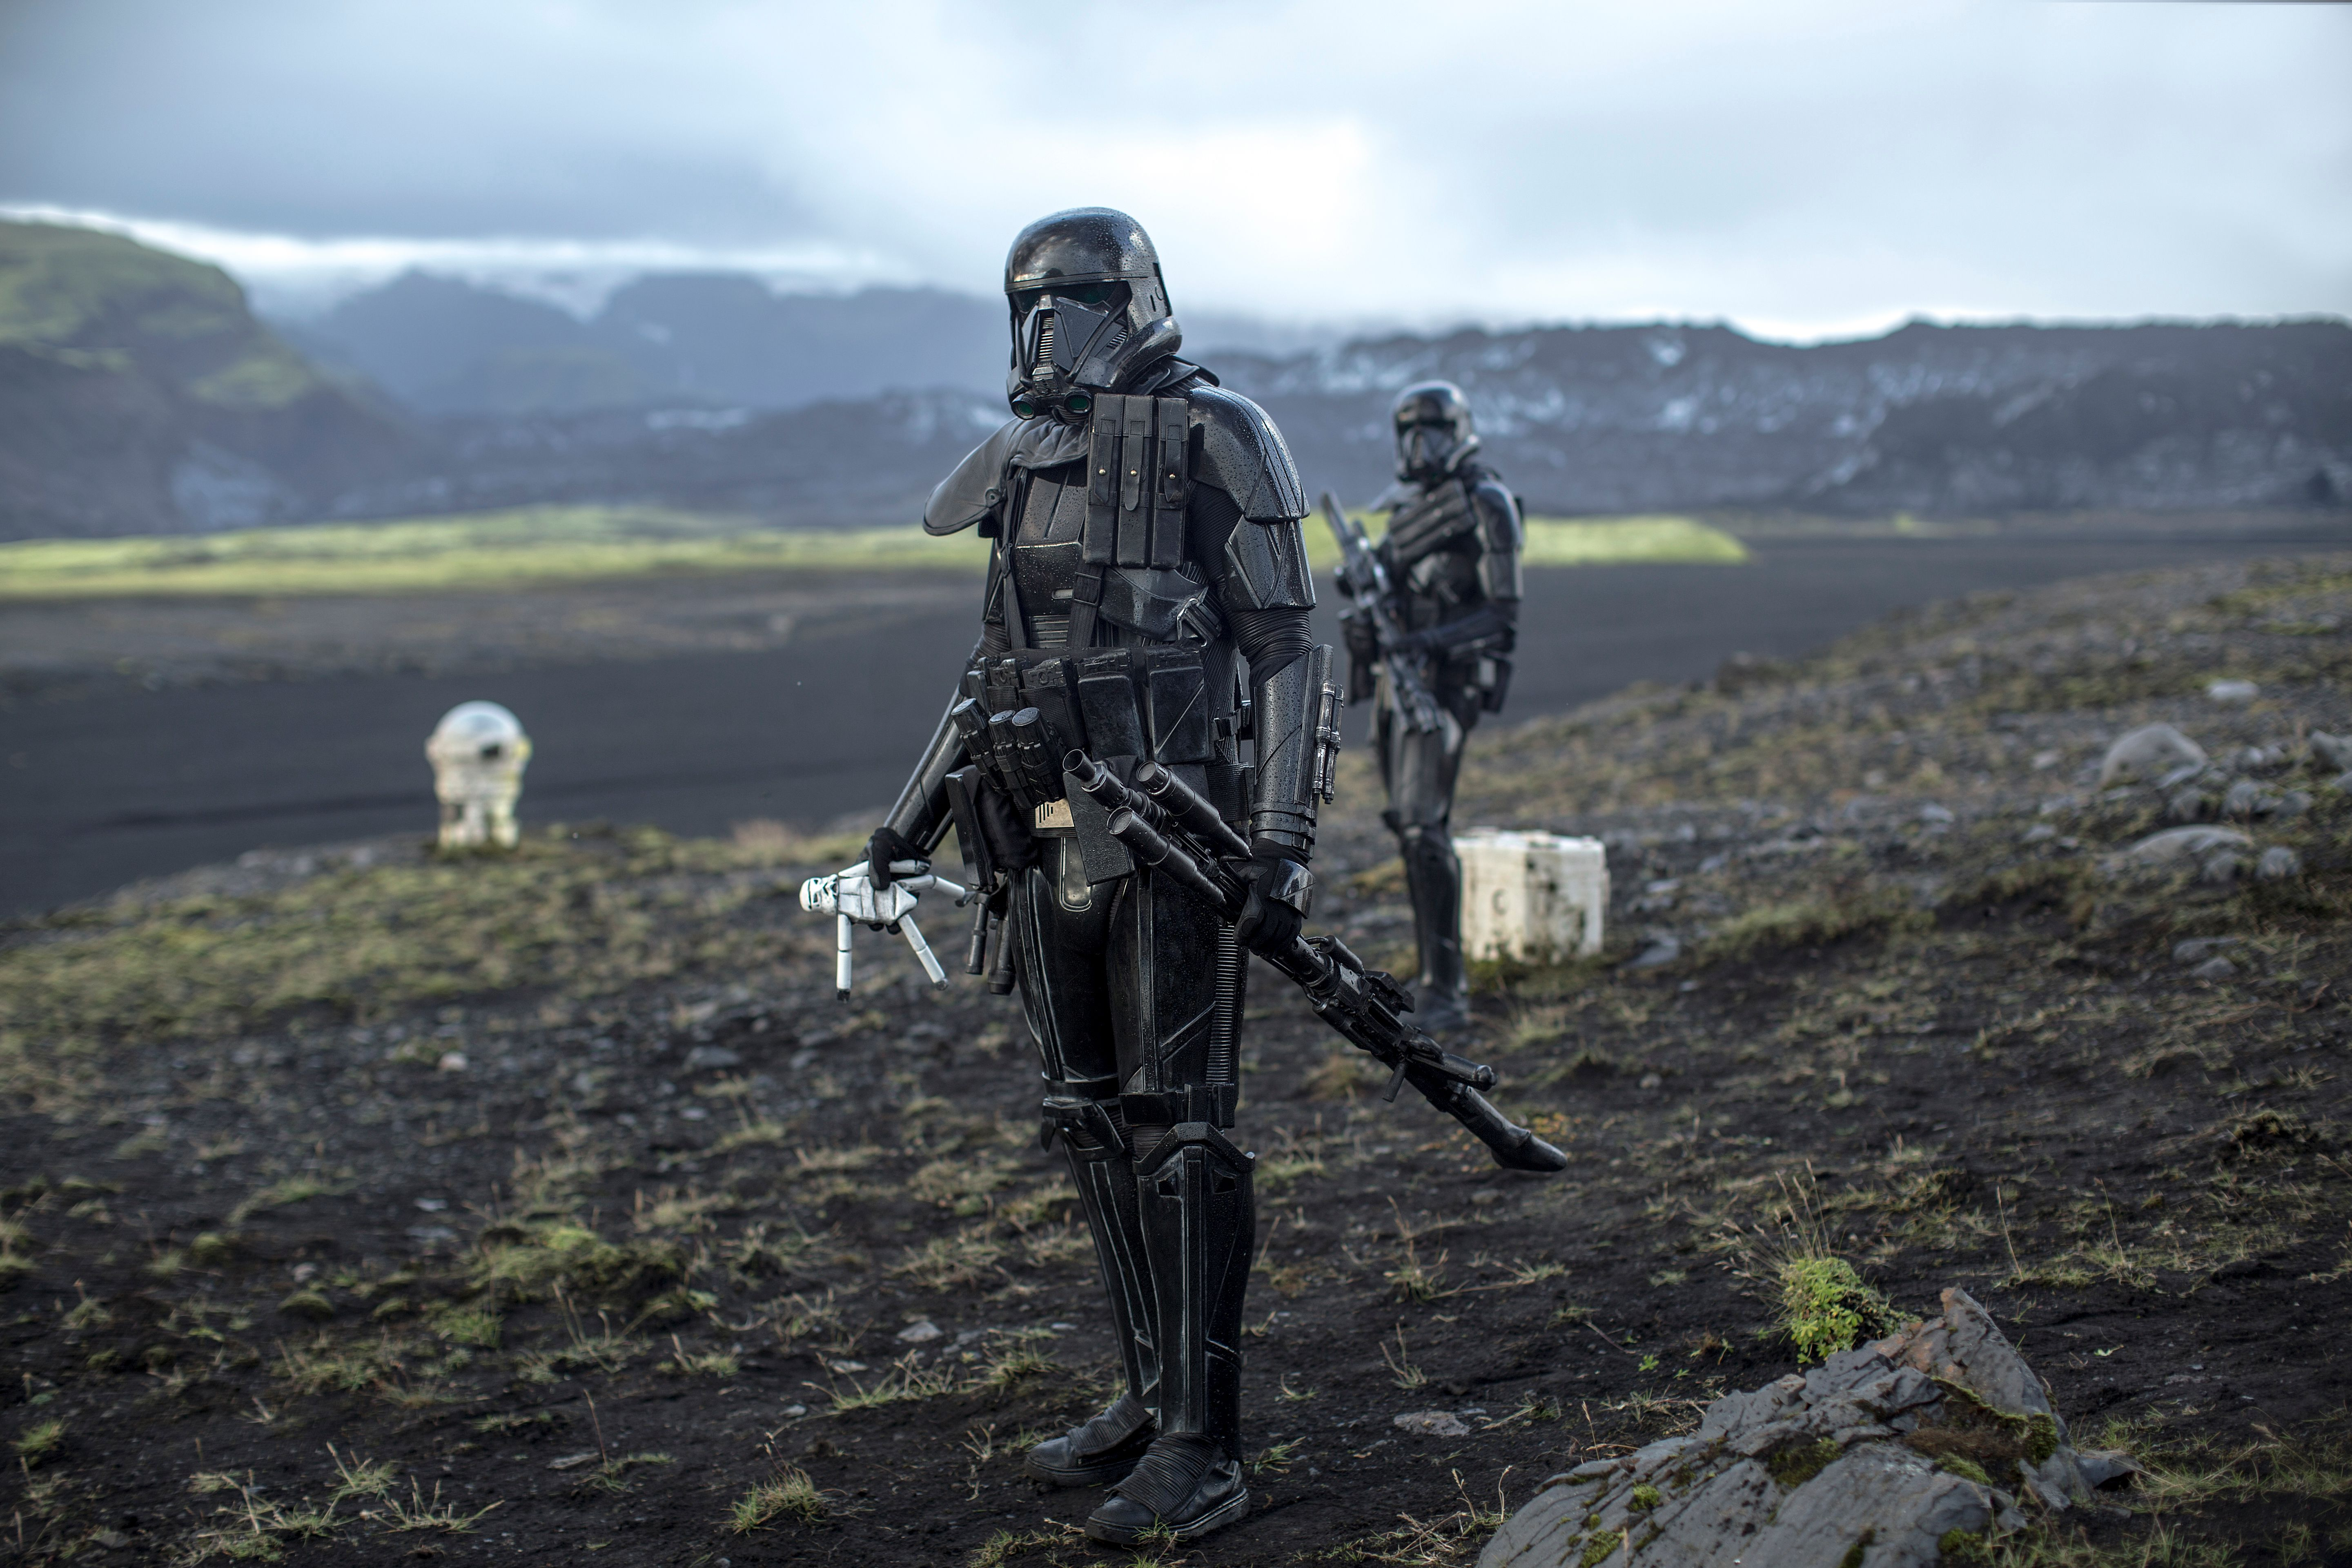 Rogue One Hi Res Images Reveal The Star Wars Story In Detail